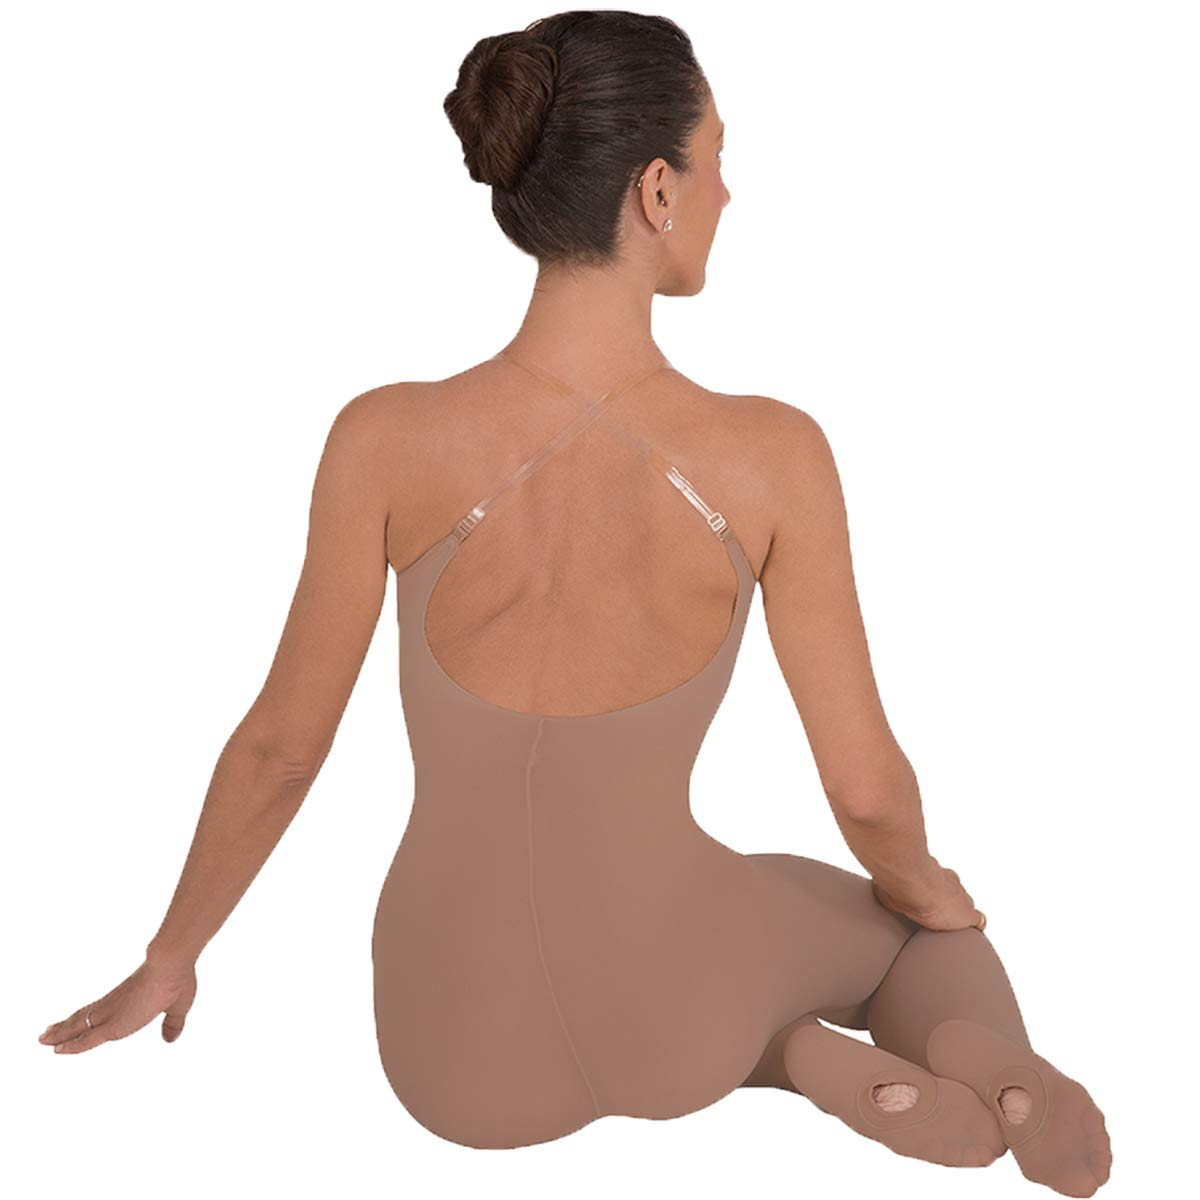 Body Wrappers A91 TotalSTRETCH Convertible Foot Camisole Body Tights, Suntan, Small/Medium by Body Wrappers